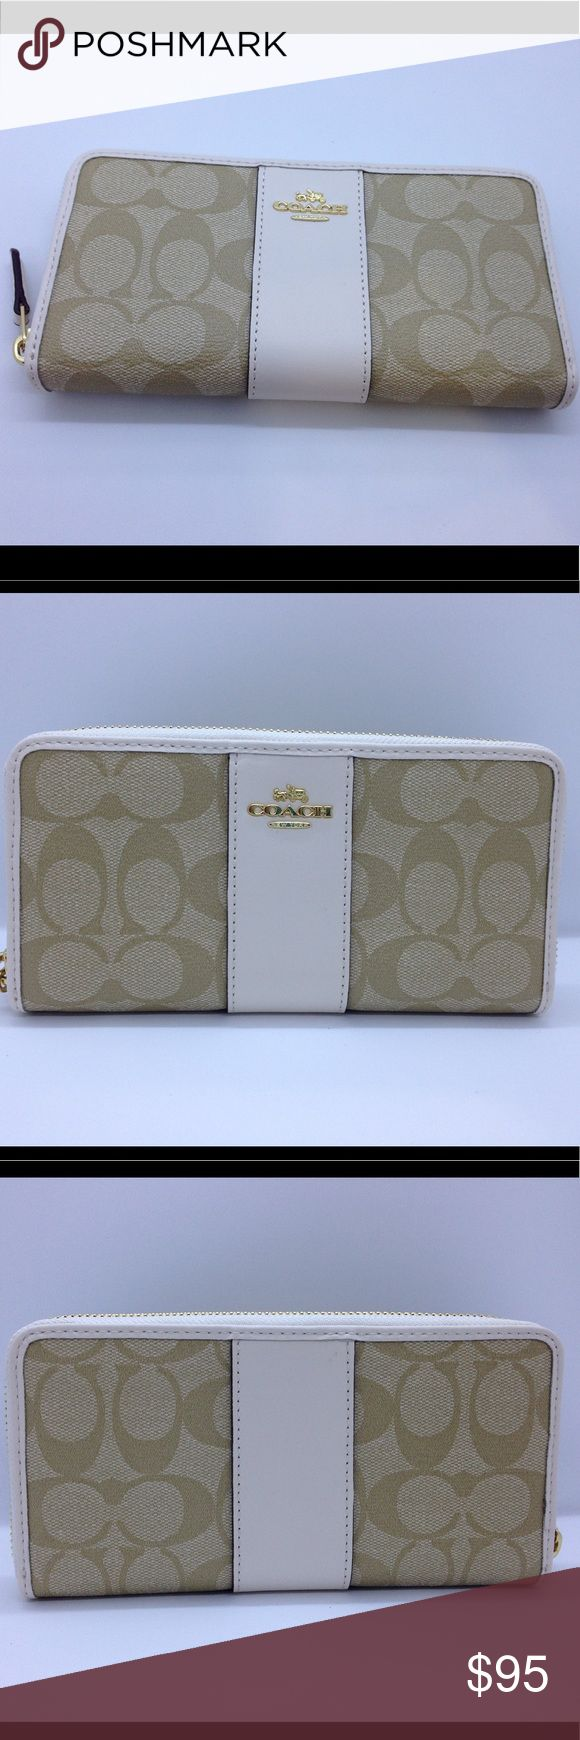 """Coach Signature PVS Leather Accordian Zip Wallet This is a brand new that come from Coach factory store. Signature coated canvas with leather trim. 12 credit card and multifunction pockets. Full length bill compartment, zip coin pocket. Zip around closure. F54630 Light Khaki / Chalk . Approximately : 7 3/4"""" ( L) x 4"""" (H). It comes with gift box , care card and tag price. Coach Bags Wallets"""